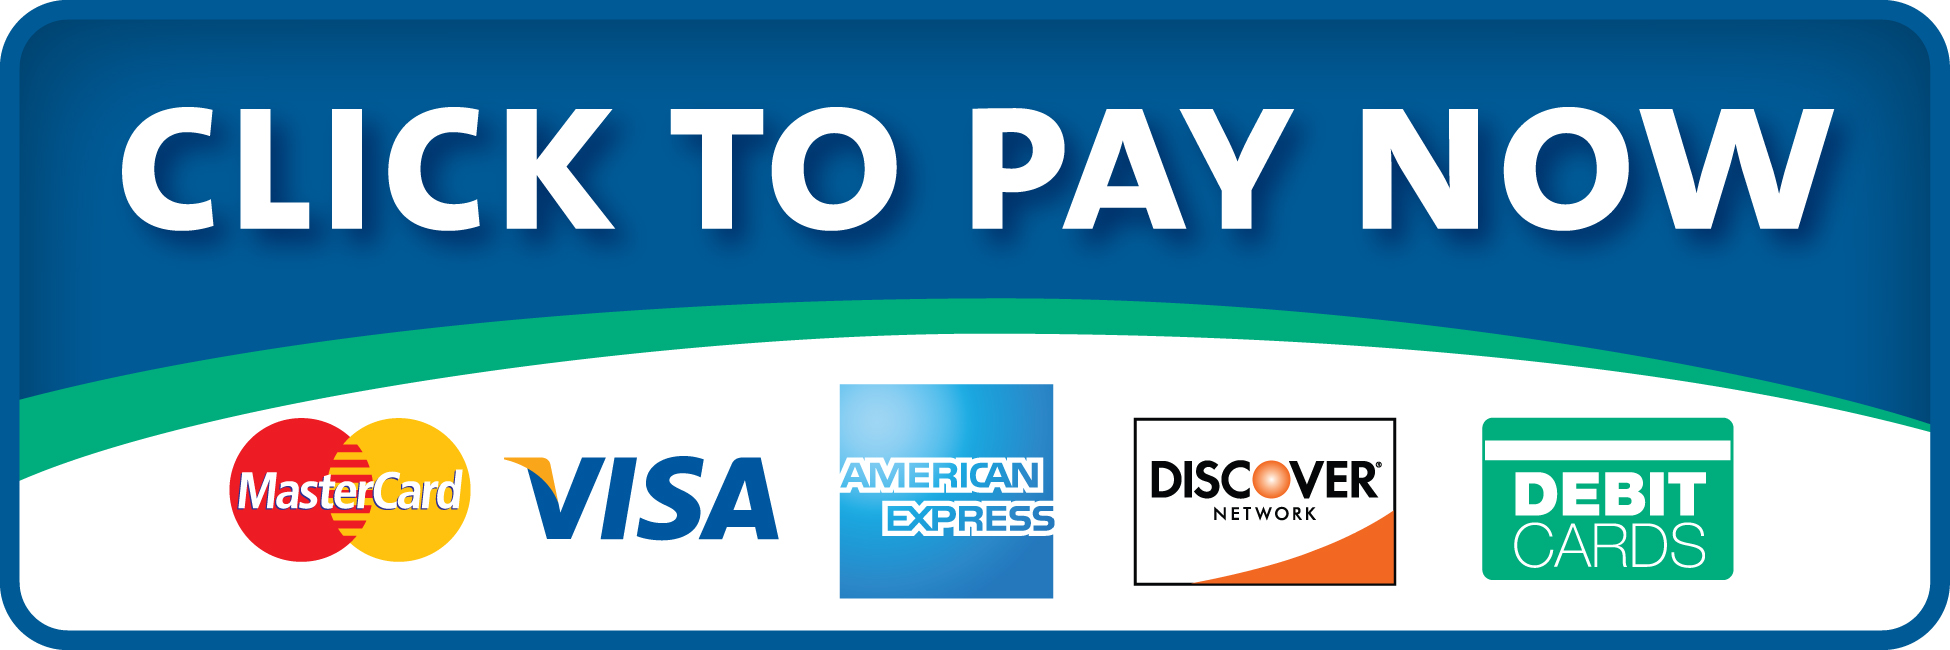 CLICK IMAGE FOR PAYMENT